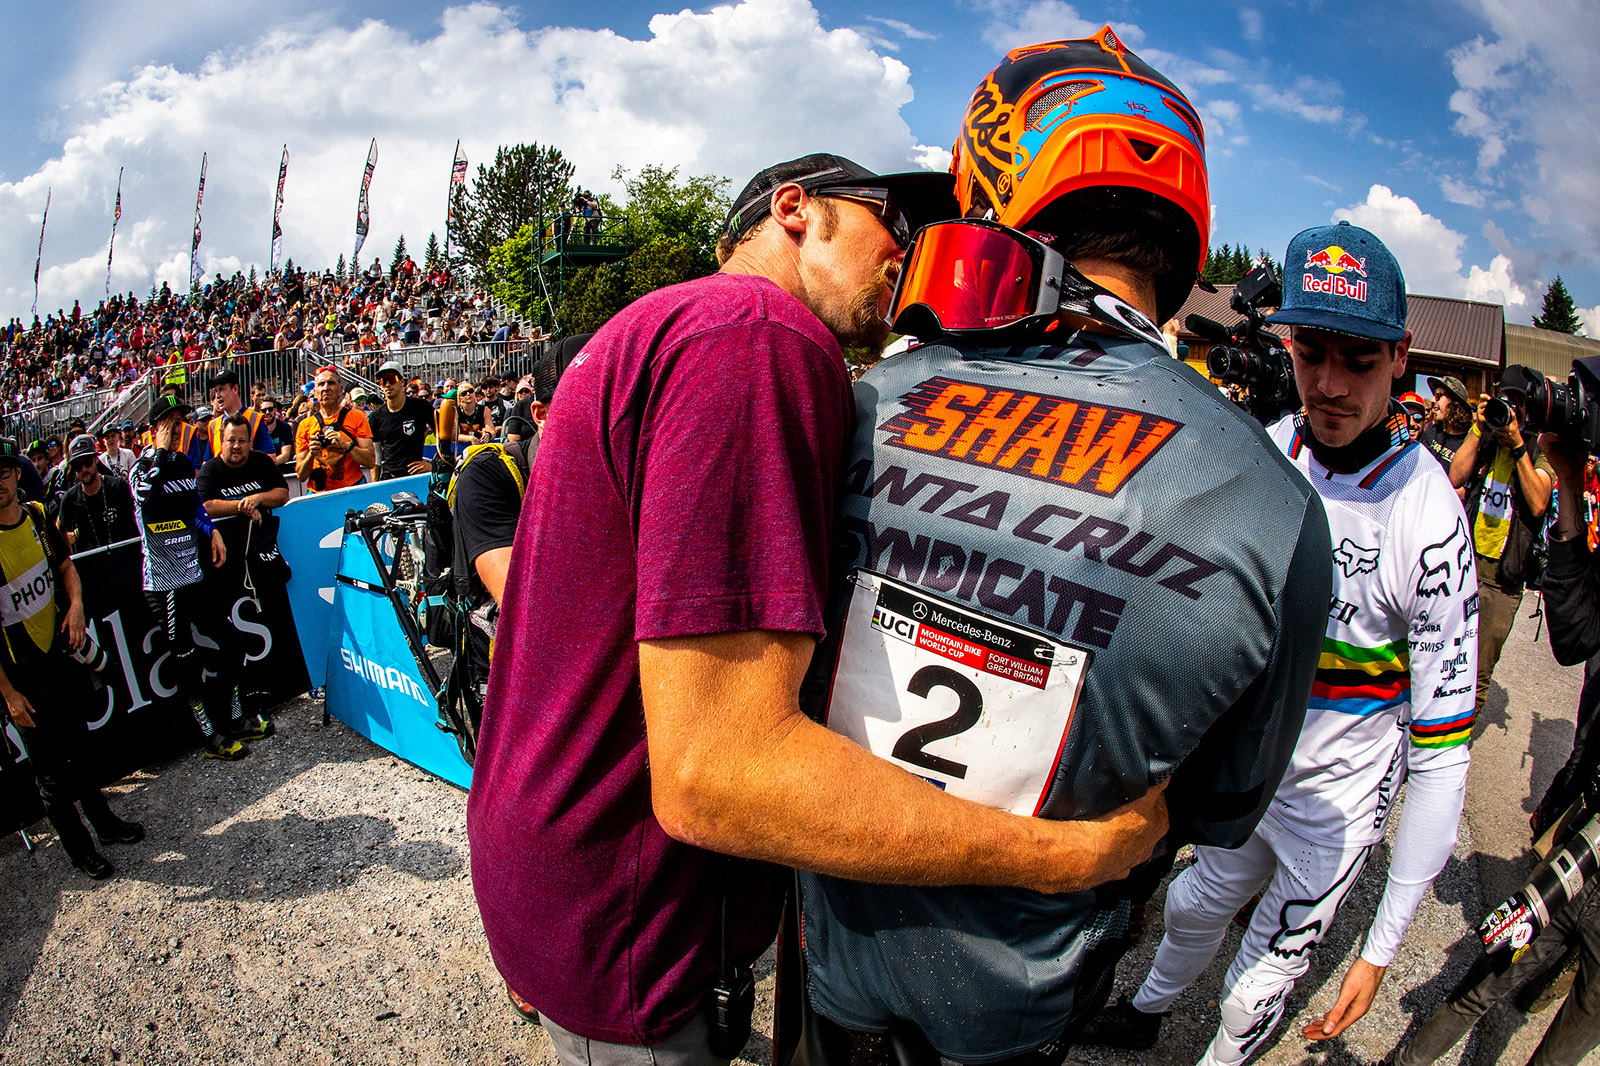 Santa Cruz Bicycles - Steve Peat and Luca Shaw at the Fort William World Cup Downhill